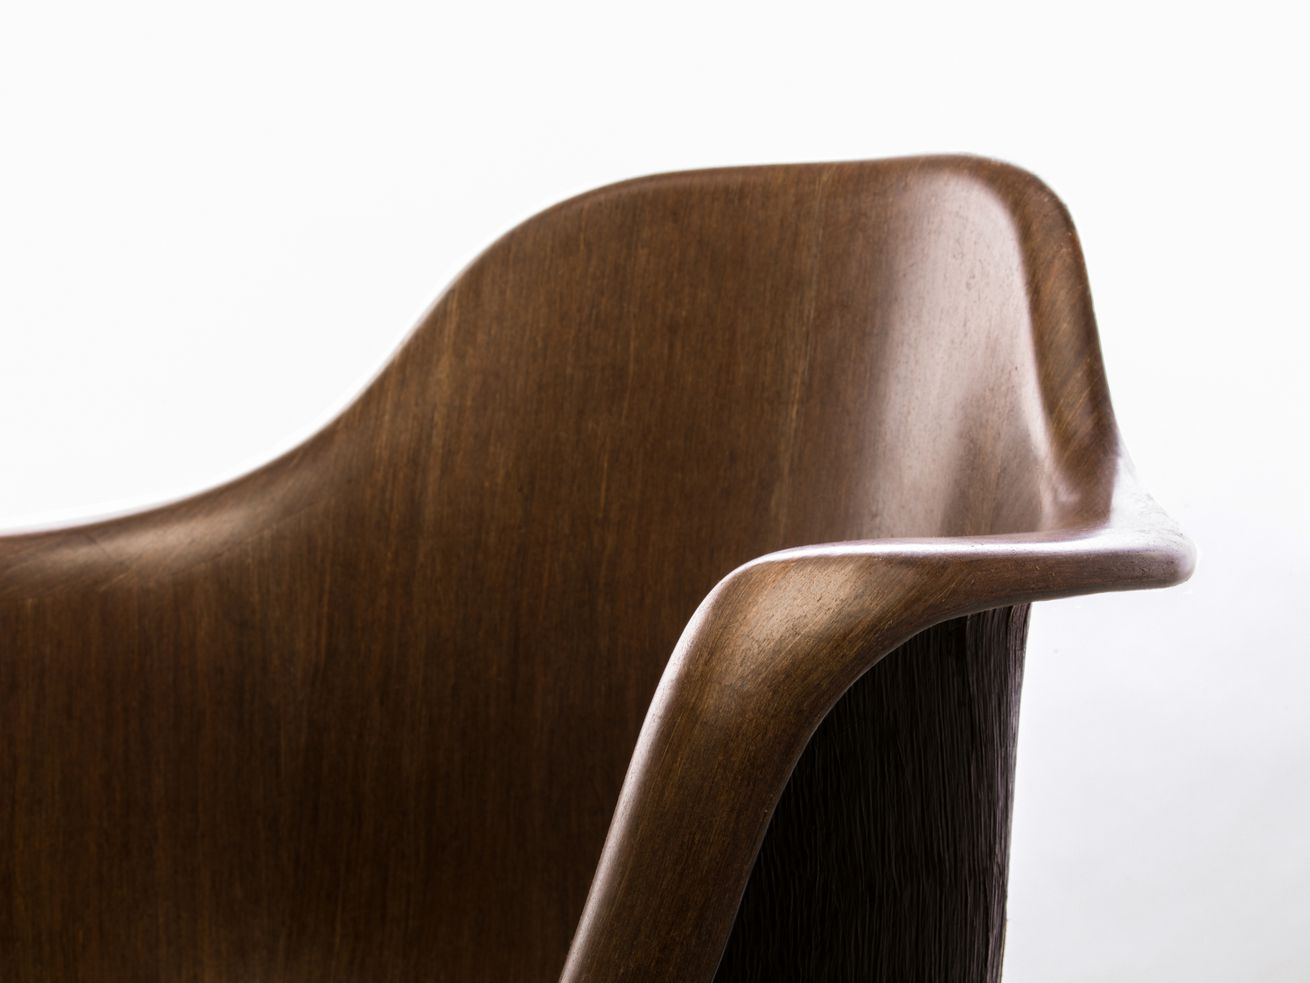 Eero Saarinen Tulip chair replica shows potential of sustainable ?wood-like? material